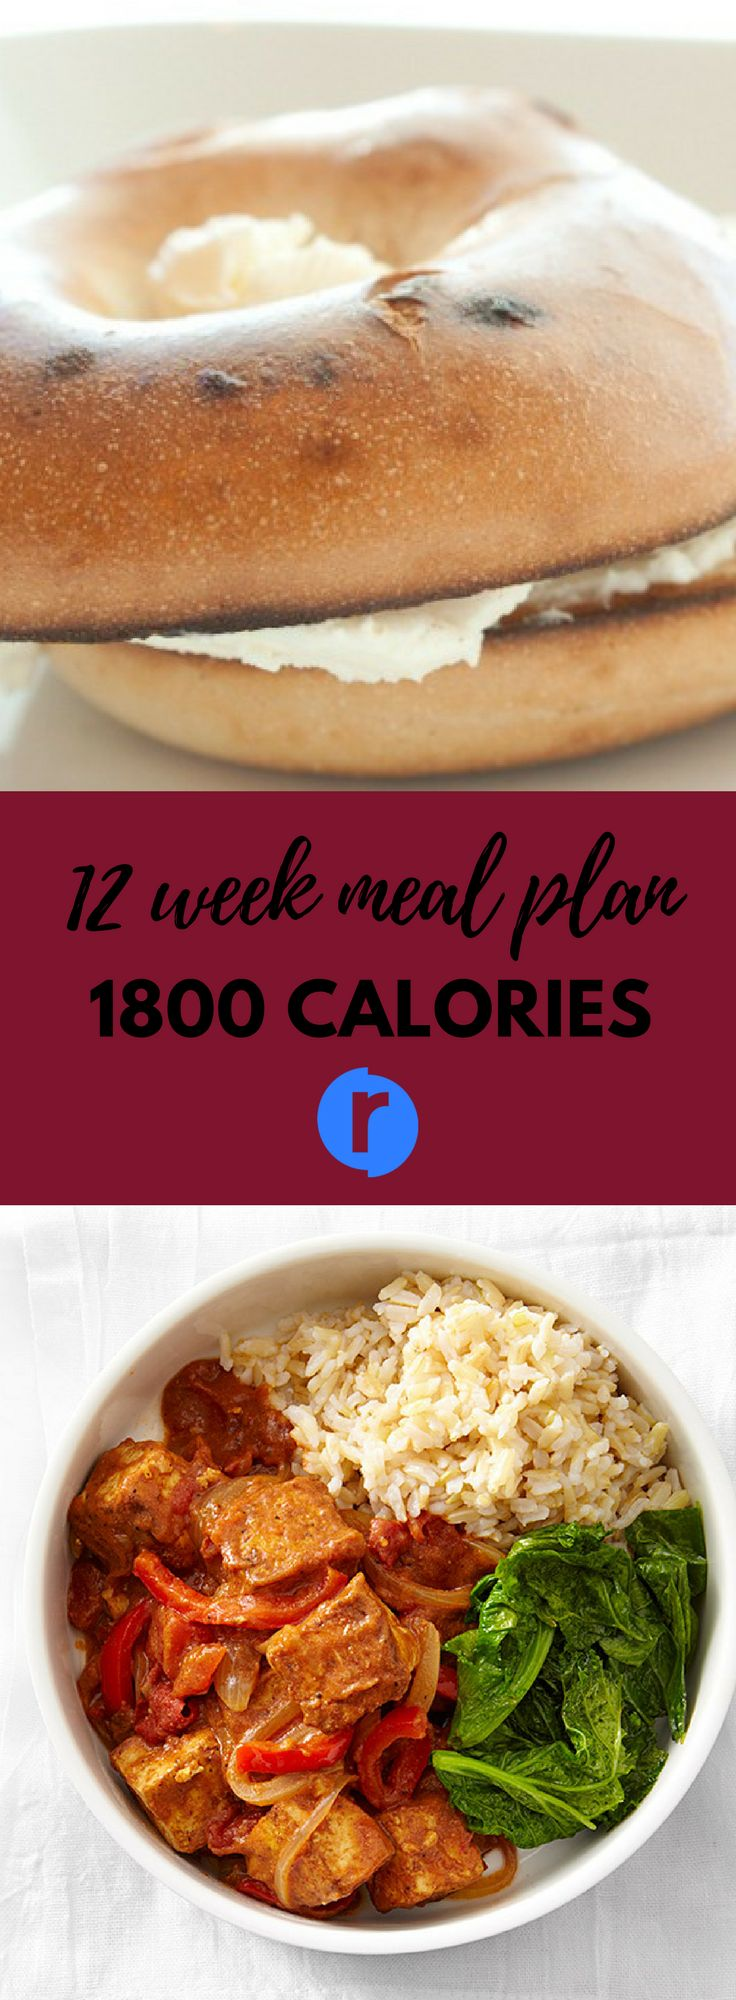 12 week meal plan 1800 calories: An 1800 calorie diet plan calls for three meals and three snacks each day to provide your body with sustained energy. Find out details at: https://routinr.org/routines/12-week-meal-plan-1800-calories Being overweight or clinically obese is a condition that's caused by having a high calorie intake and low energy expenditure. In order to lose weight, you can either reduce your calorie intake, or else exercise regularly and reduce your calorie intake at the same…